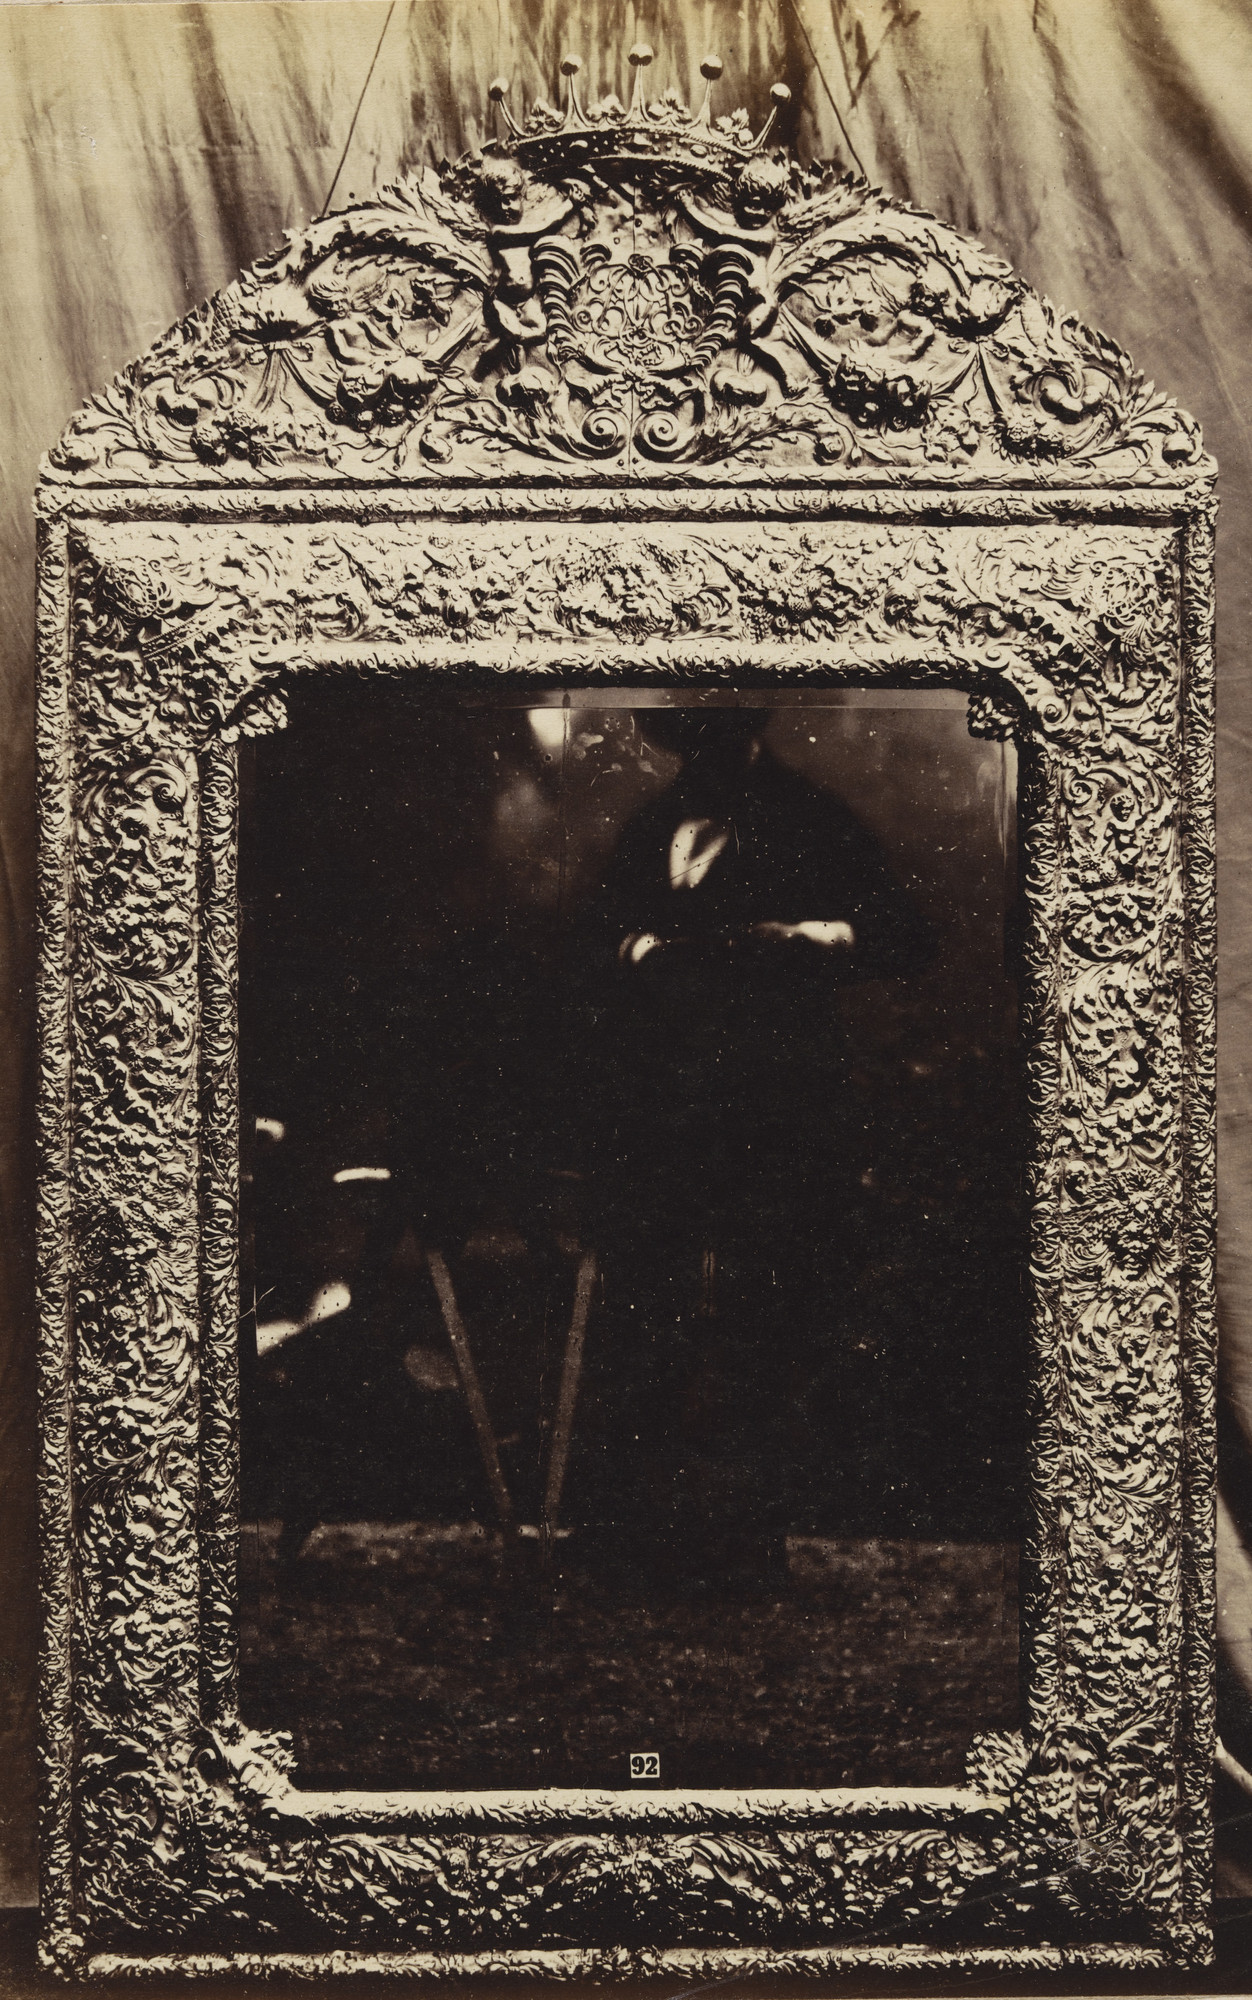 Charles Thurston Thompson. Late seventeenth-century silver repoussé mirror, attributed to Gerrit Jensen, d. 1715. 1853